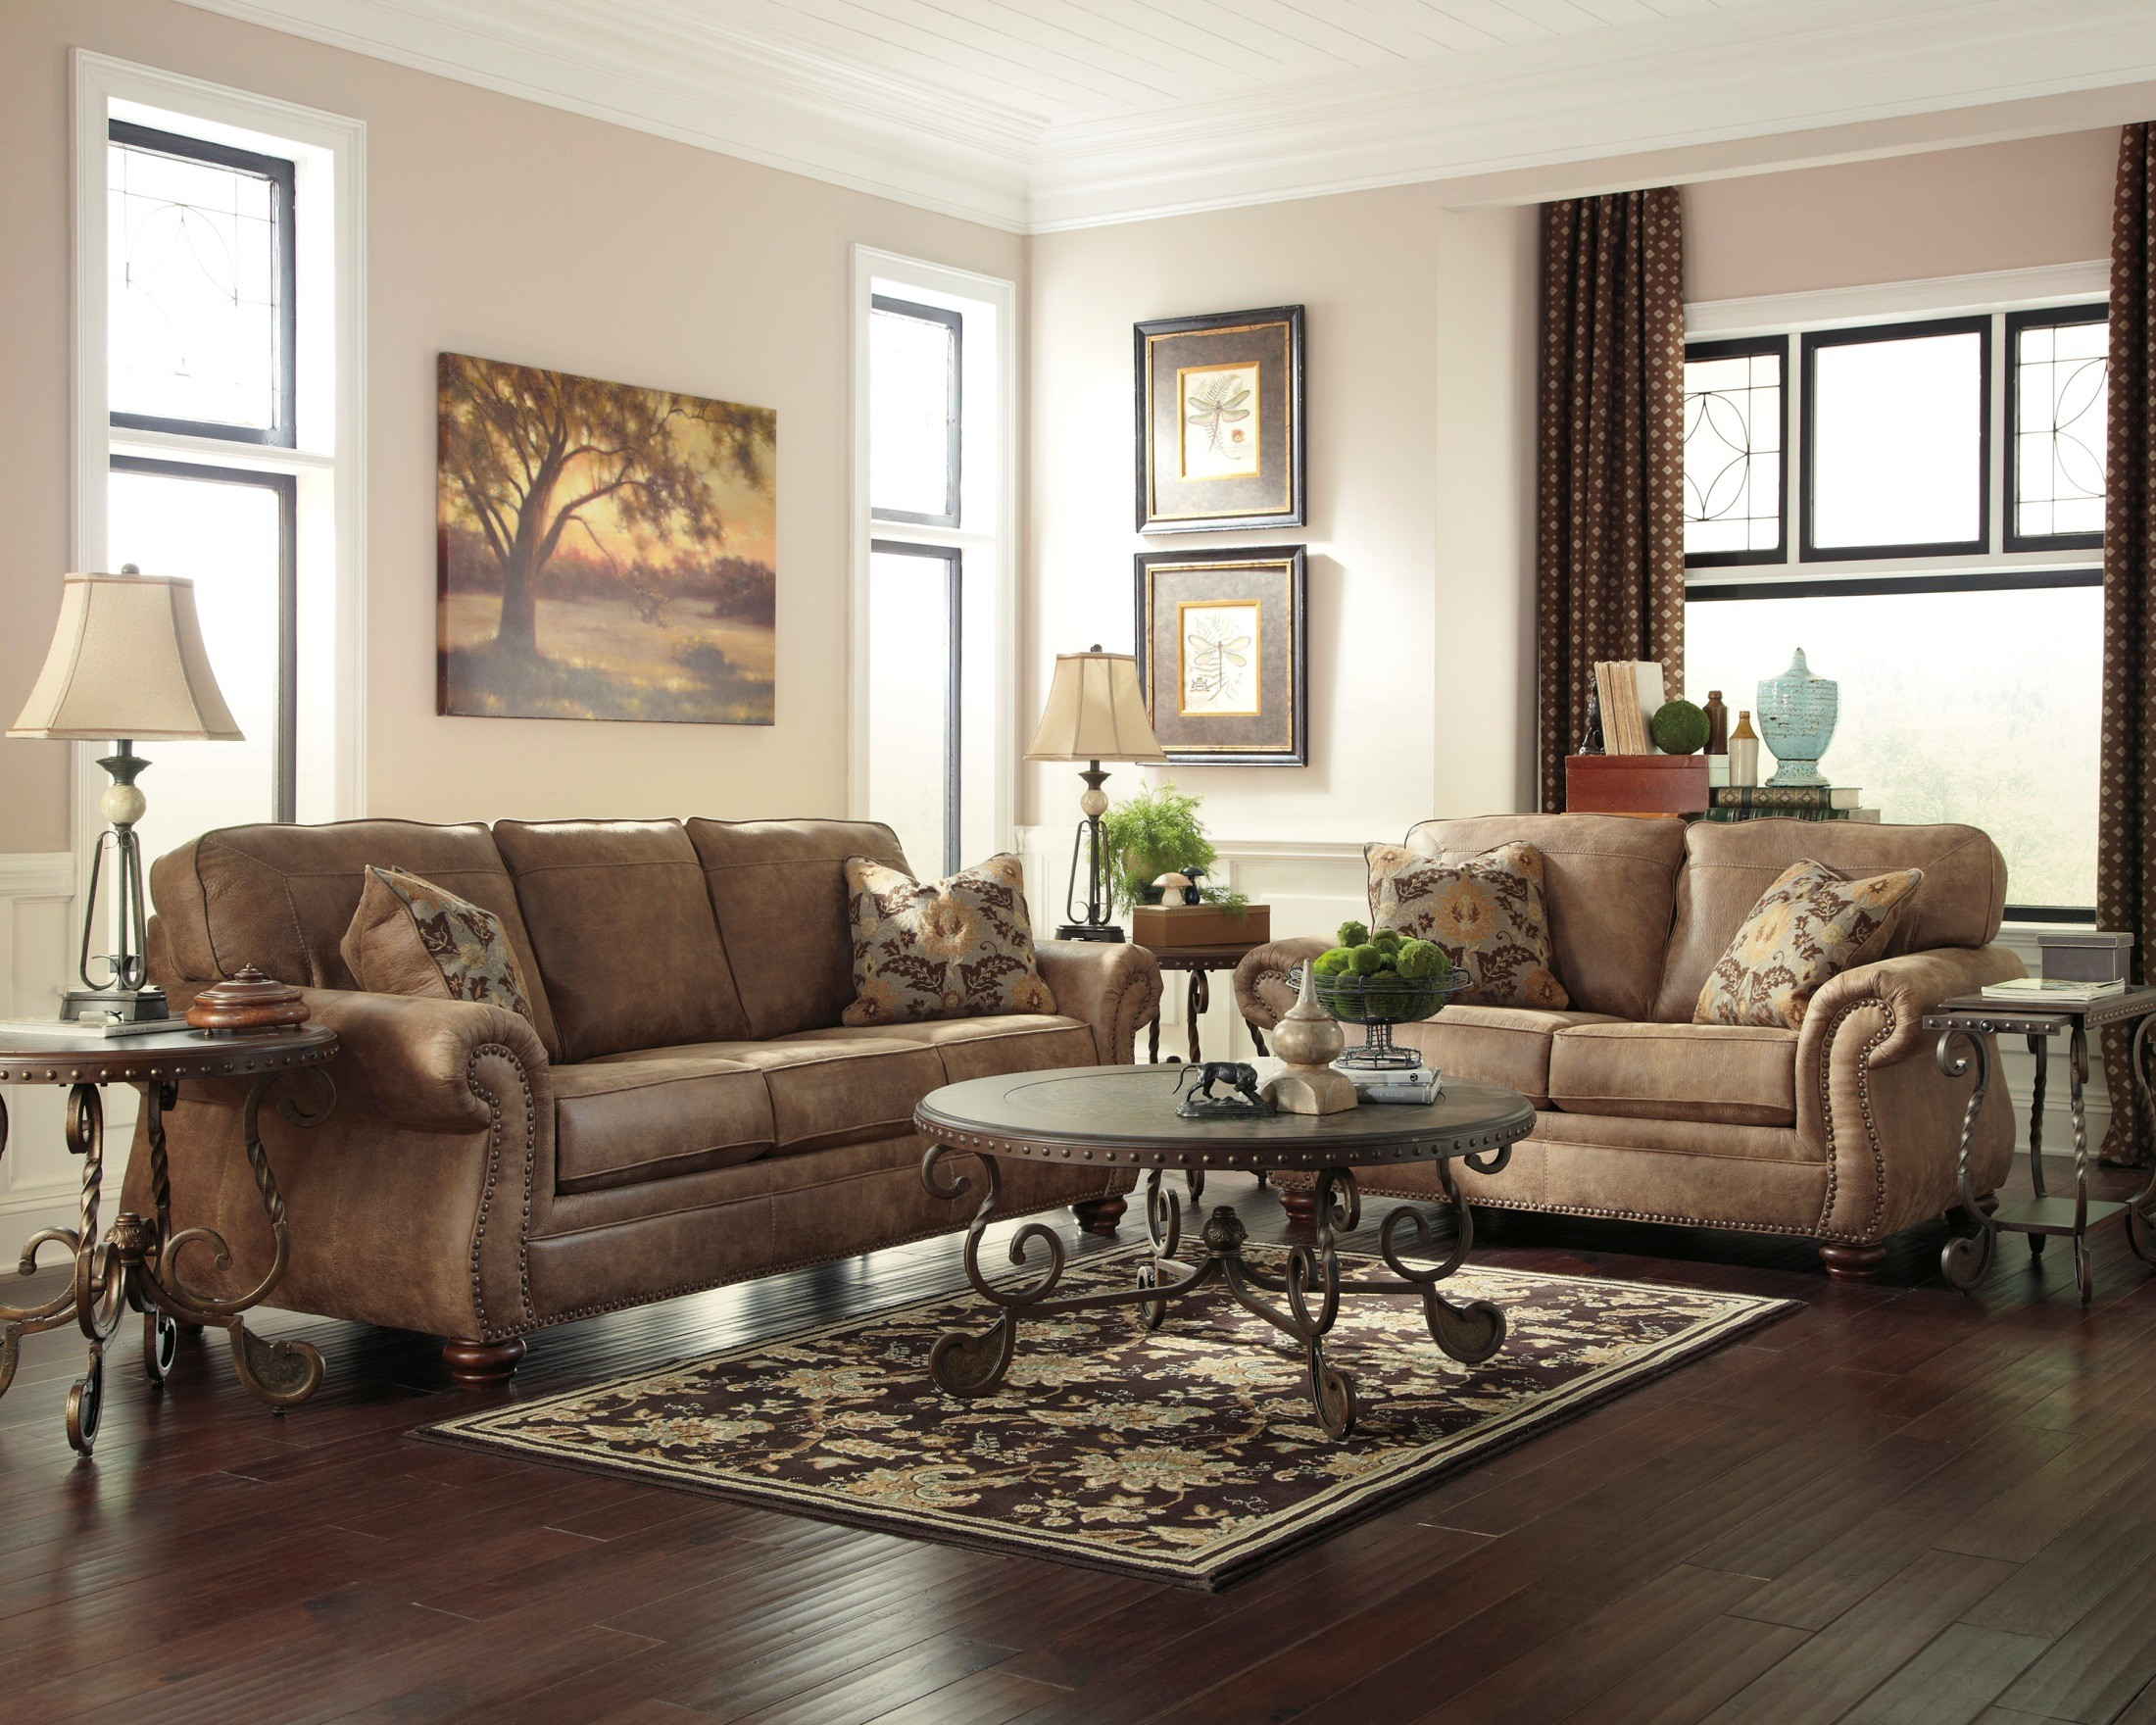 Living Room Furniture: Larkinhurst Earth Living Room Set From Ashley (31901-38-35